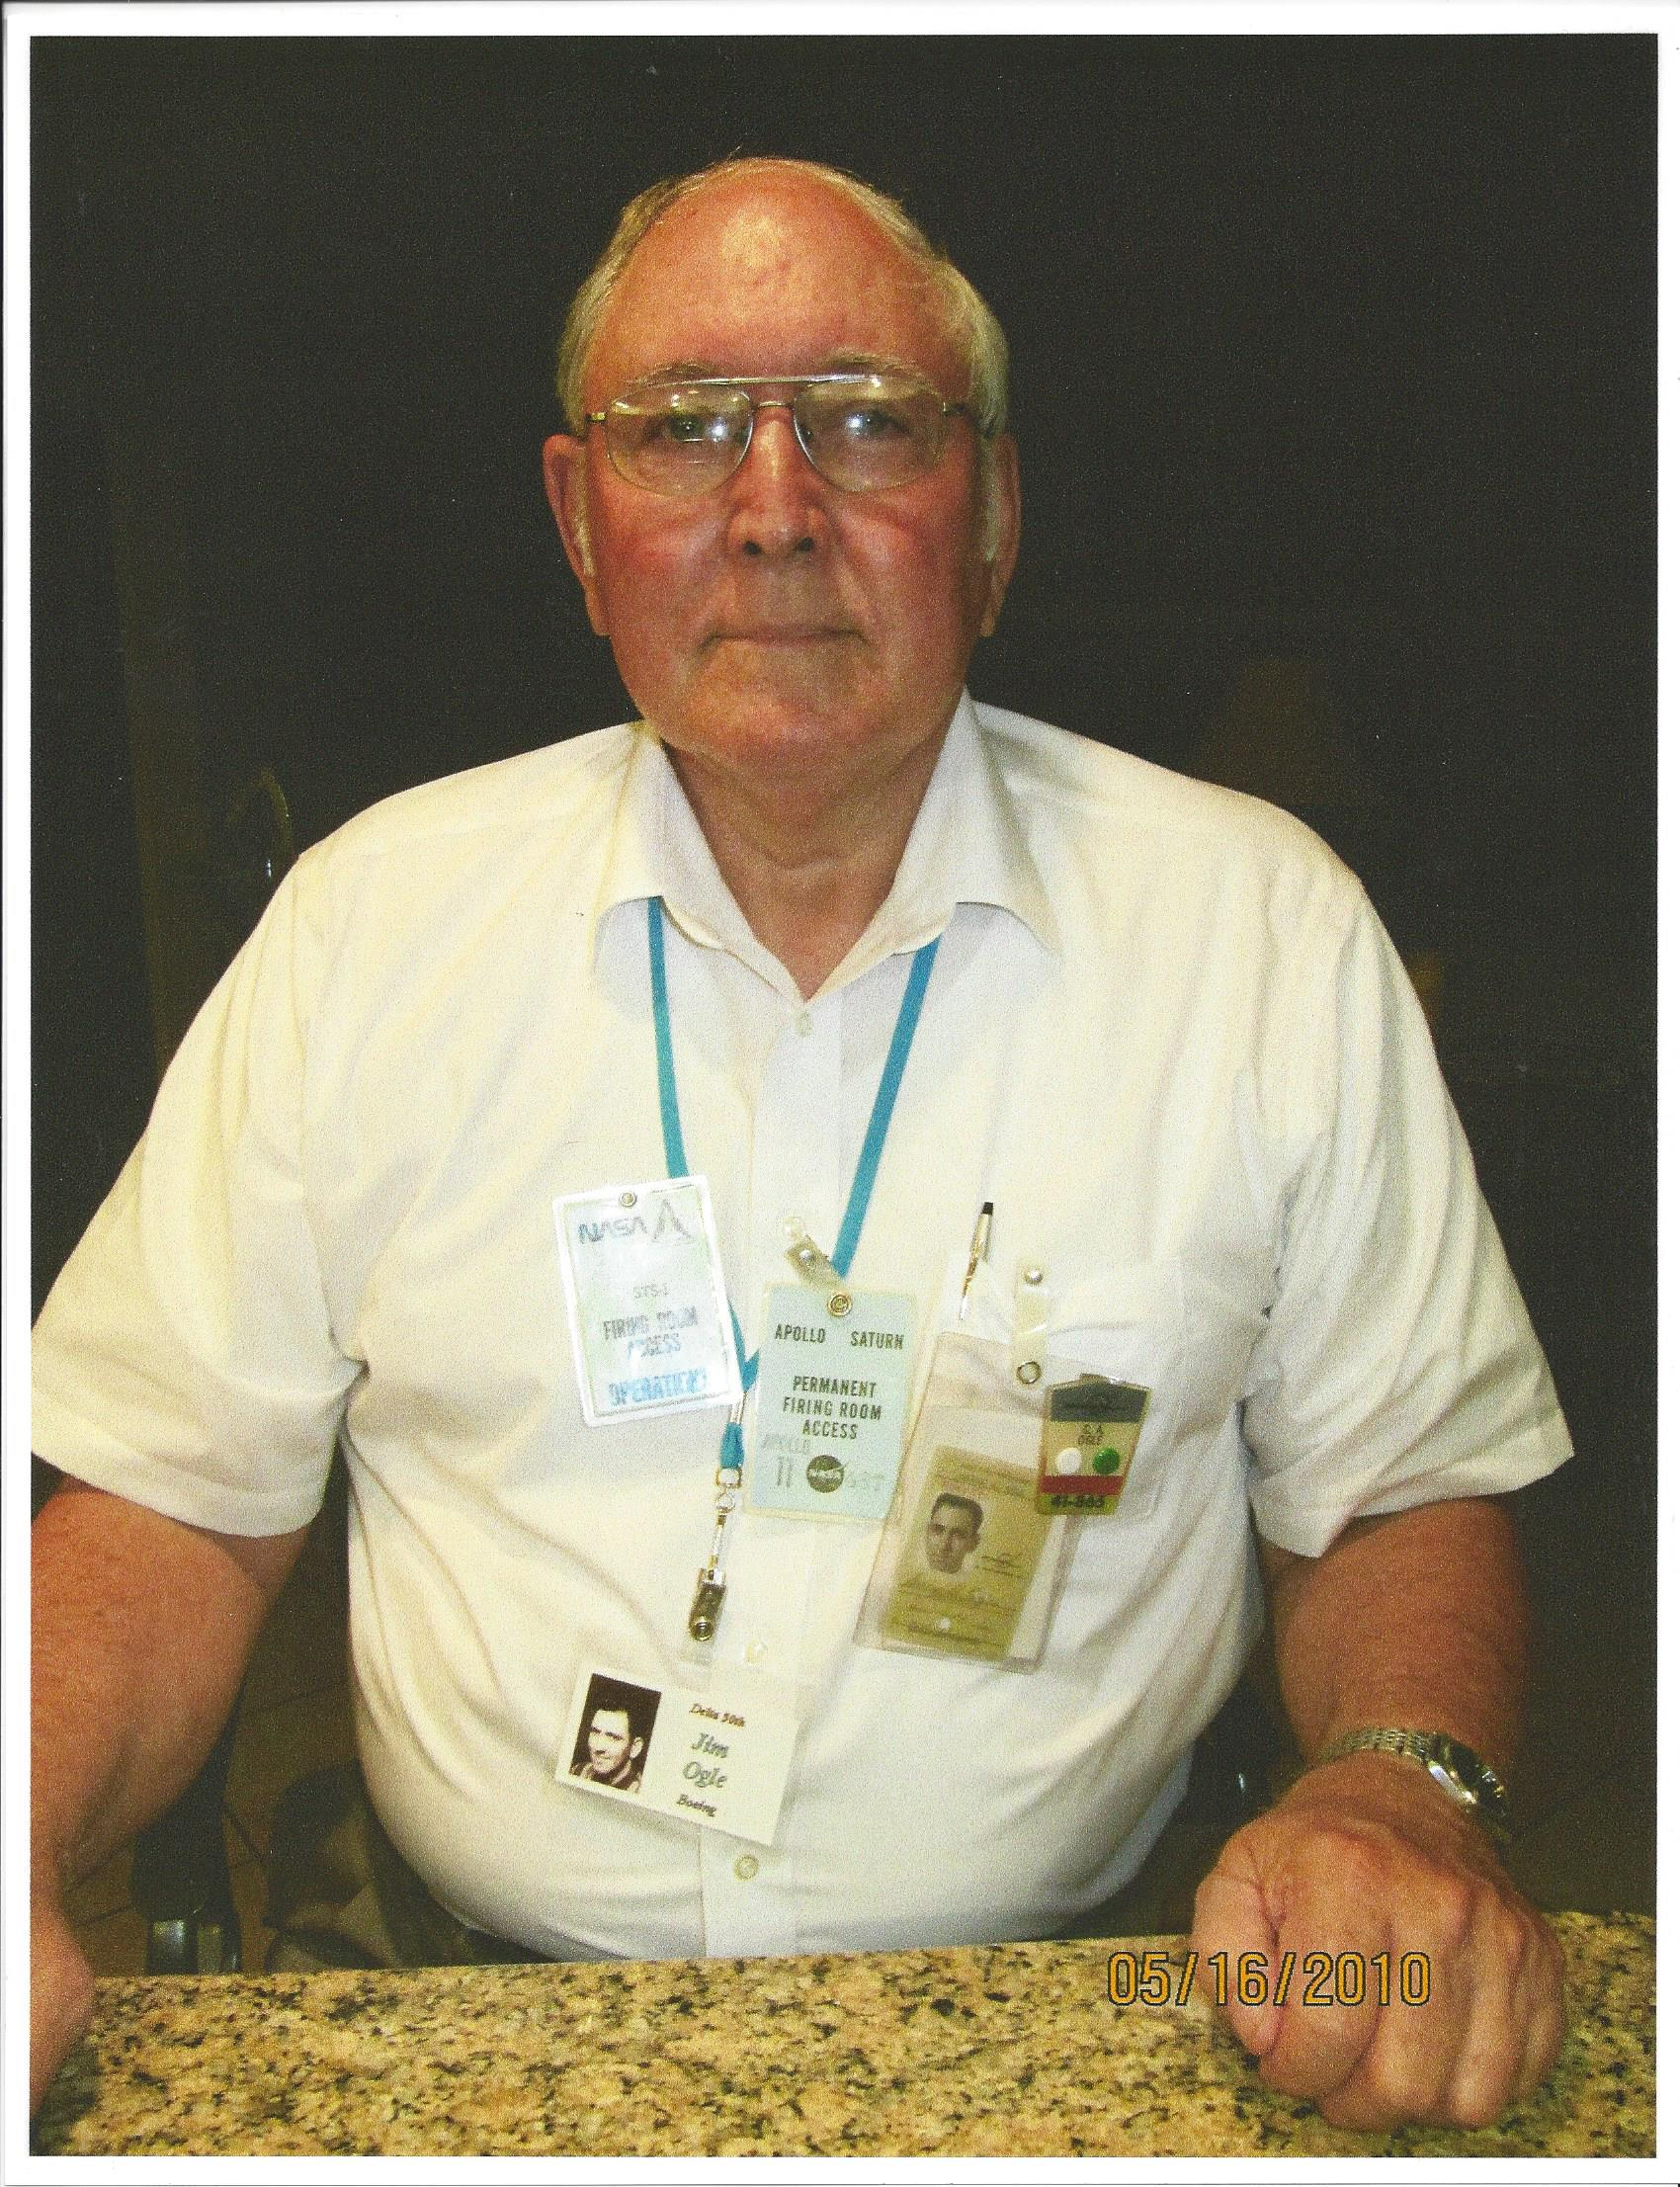 Jim with his old badges preparing to attend the event commemorating the 50th anniversary of the MDAC Delta launch vehicle program. Jim worked the first 12 launches that used a retired Douglas Thor missile as the first stage booster rocket. The first Delta mission was a NASA payload called ECHO in 1960 which was a 100-foot diameter balloon. Eleven more NASA payloads were to follow.